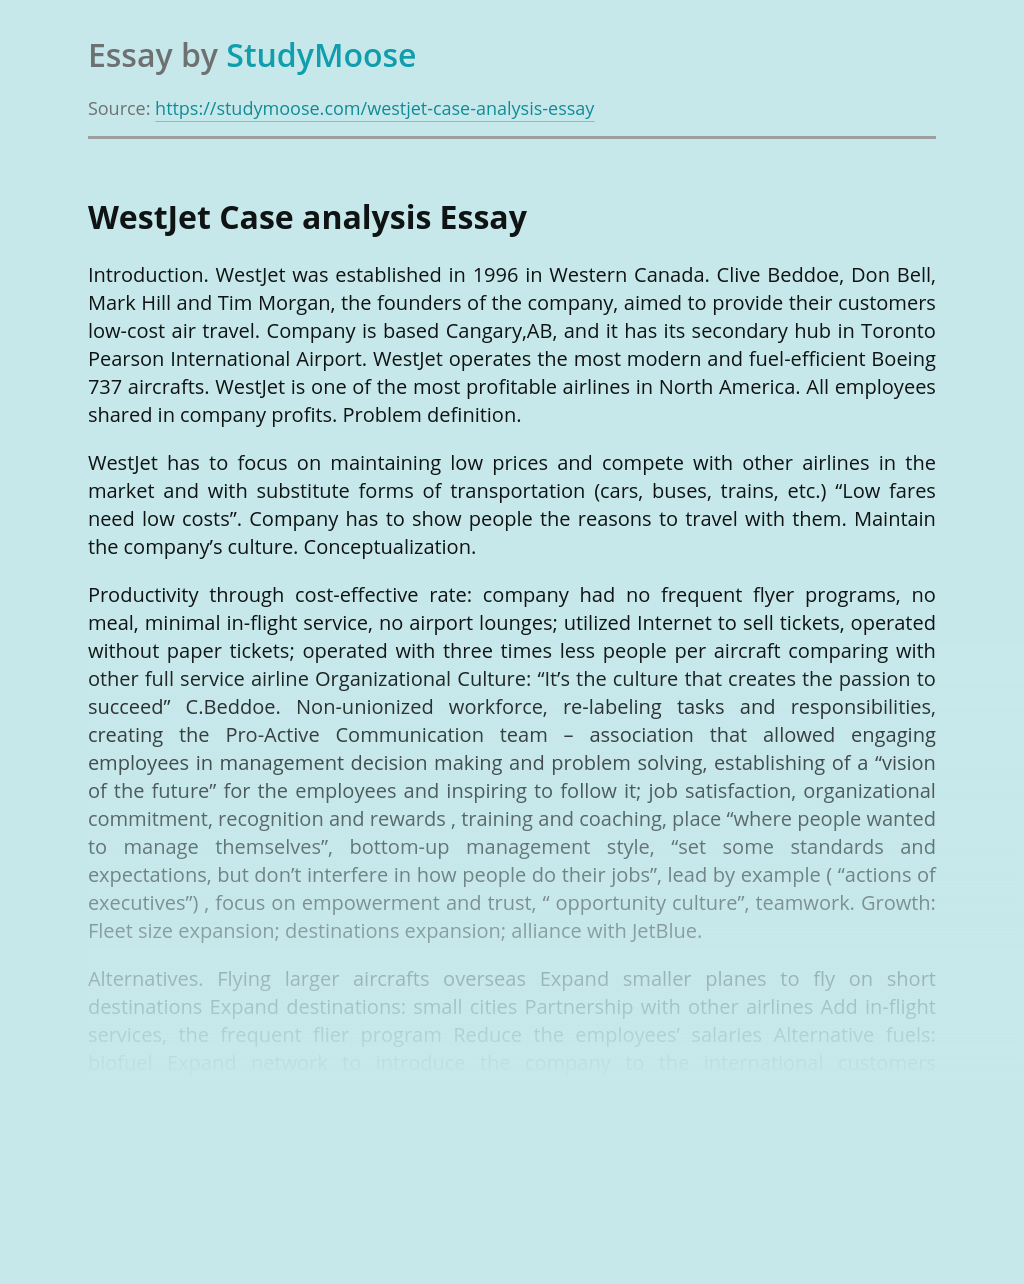 WestJet Case analysis